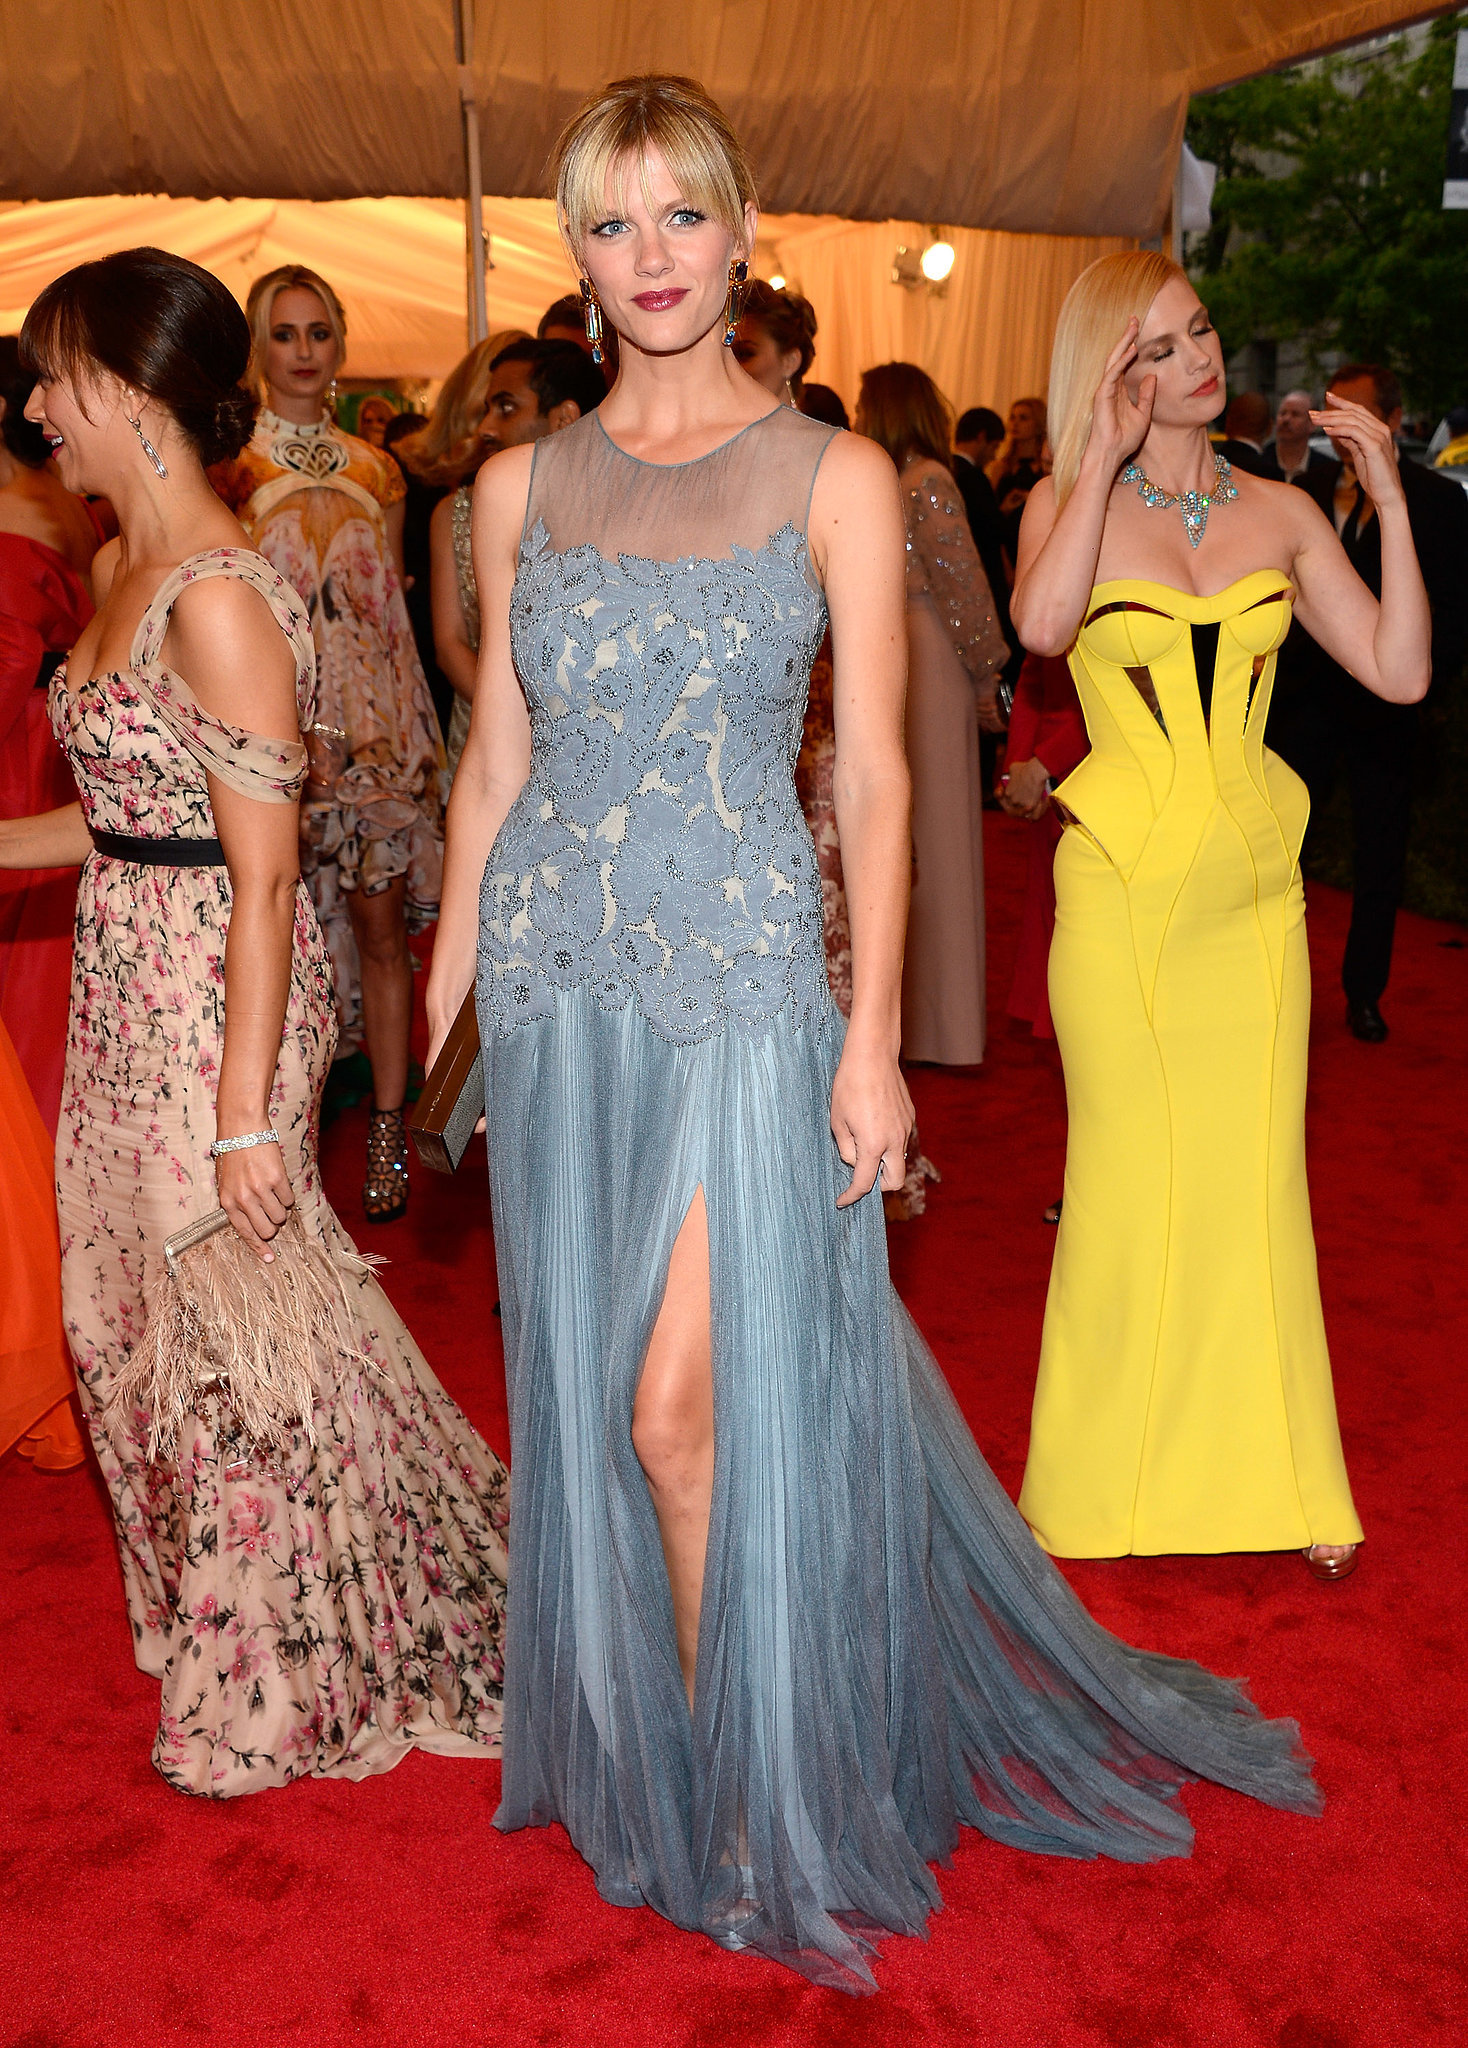 Brooklyn Decker in Light Blue Tory Burch at 2012 Met Gala